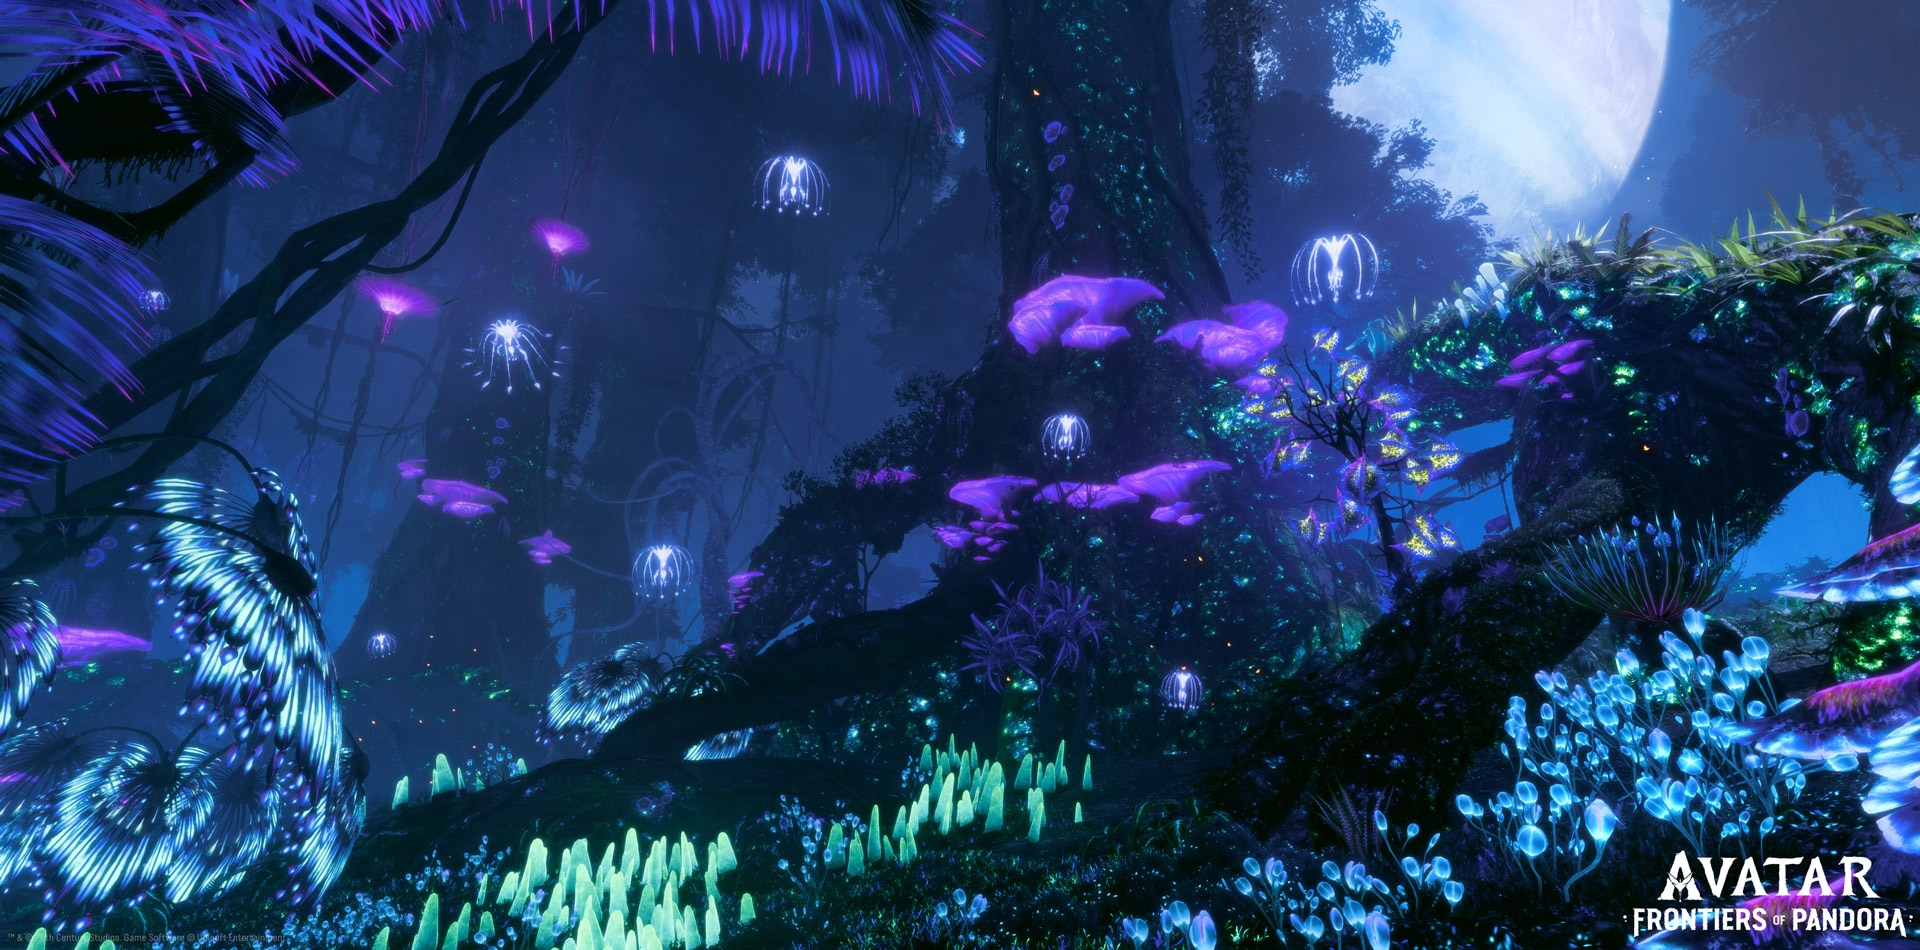 'It's Not Just the Tech, but the People' – How Avatar: Frontiers of Pandora Embraces Creativity While Pushing Boundaries of Technology - Image 4